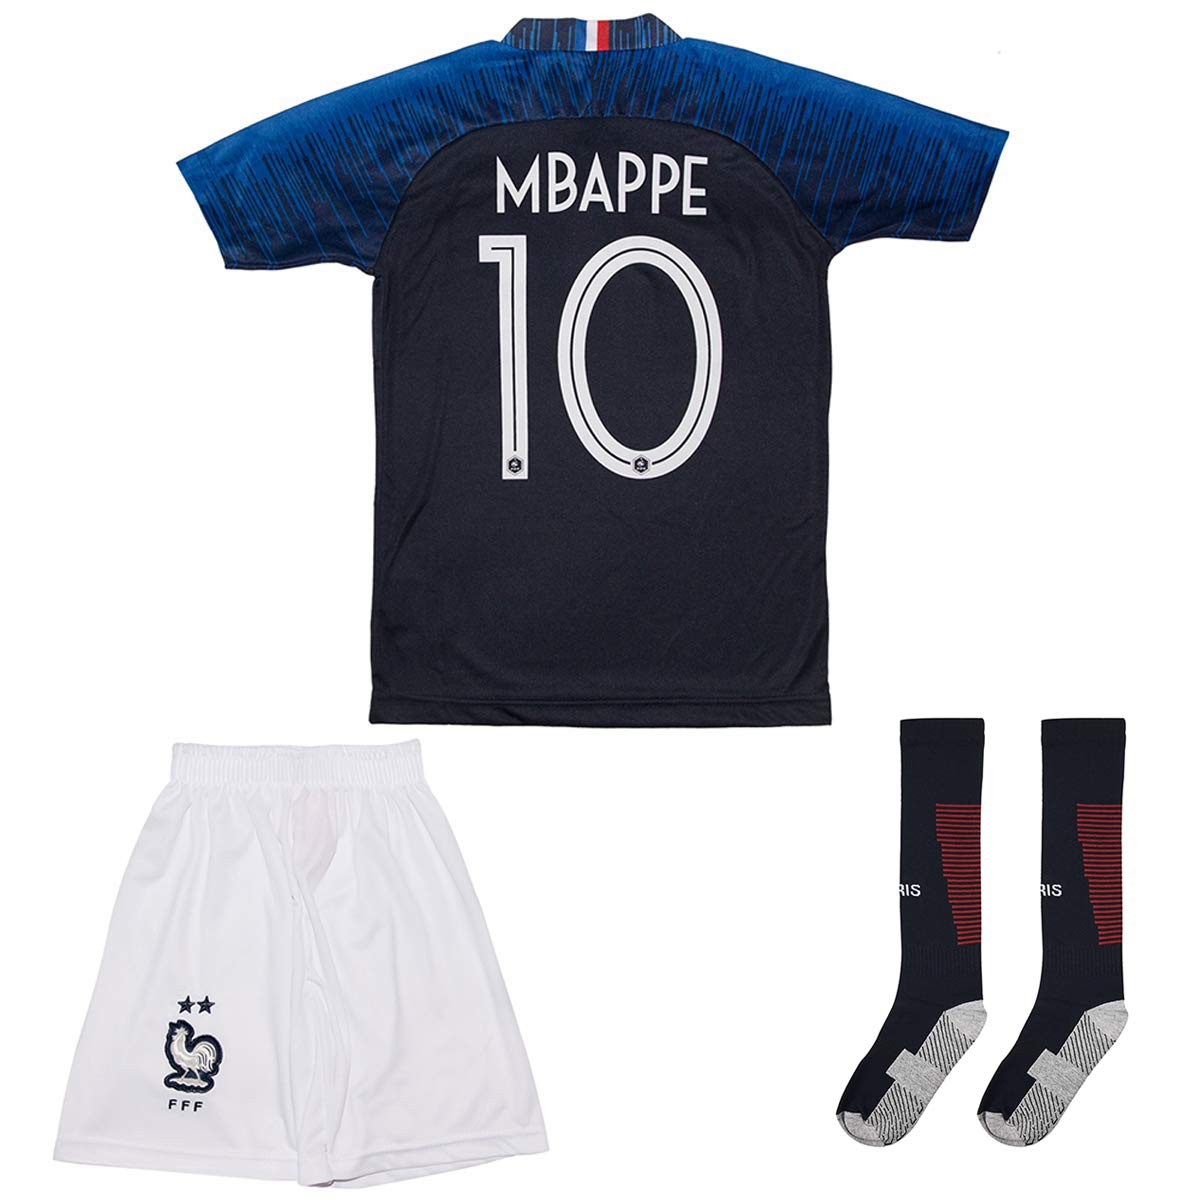 4f79e41b7fb France Mbappe Jersey  10 Away 18 19 - Football Kits Soccer Shirt For Kids  Boys Children Youth  Amazon.co.uk  Sports   Outdoors